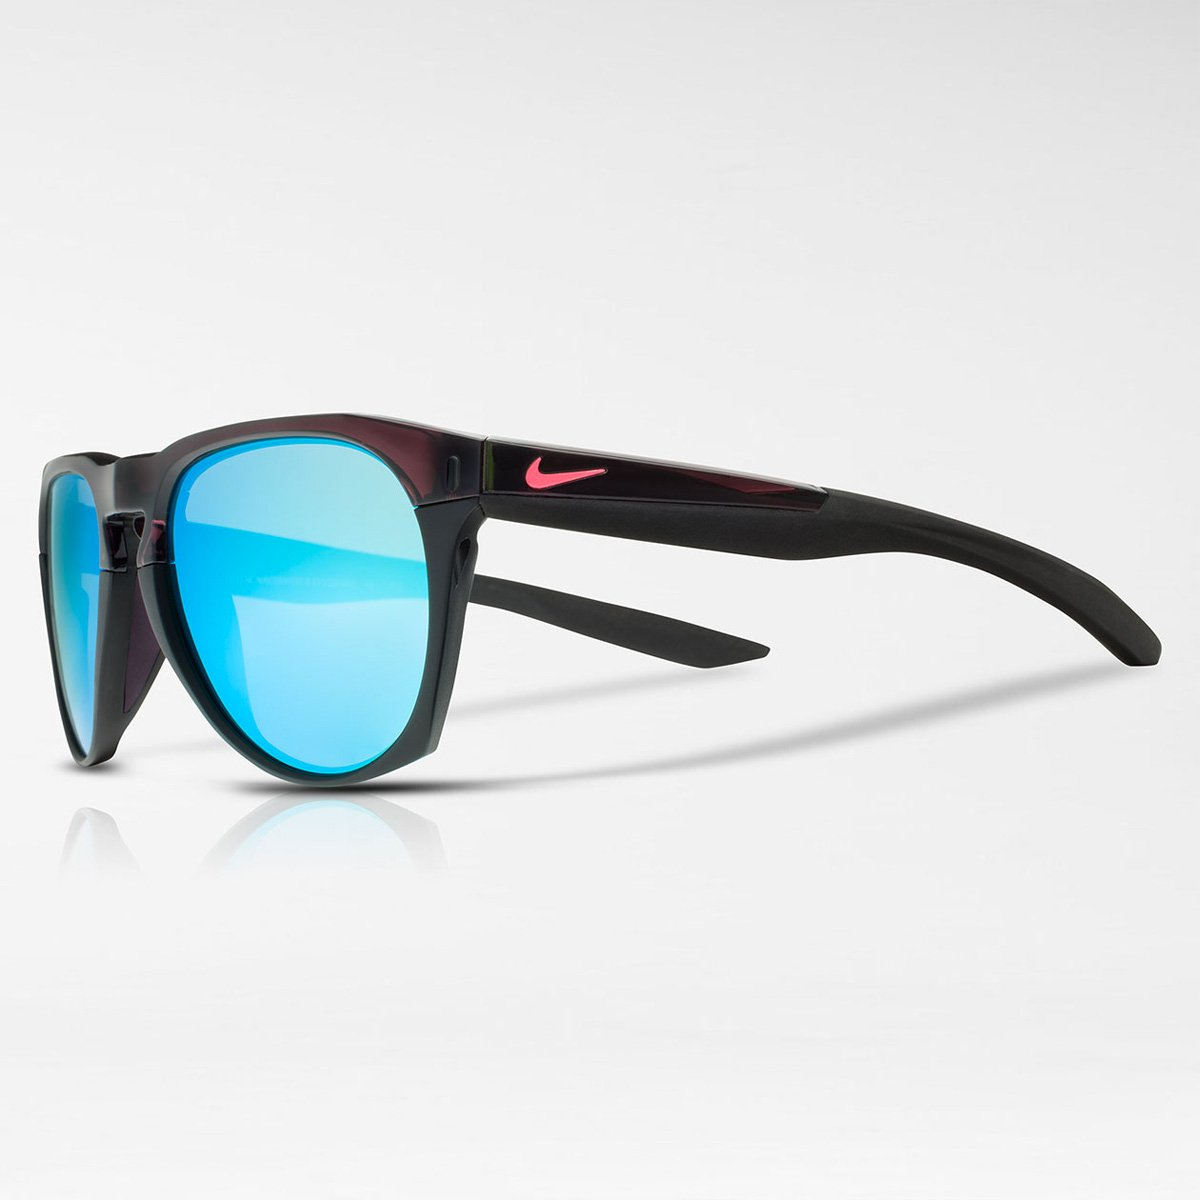 EV1020-205 NIKE Essential Navigator R Sunglasses EV1020 Nike Men/'s Essential Navigator M Square Sunglasses Matte Tortoise//Night Maroon 54 mm Inc